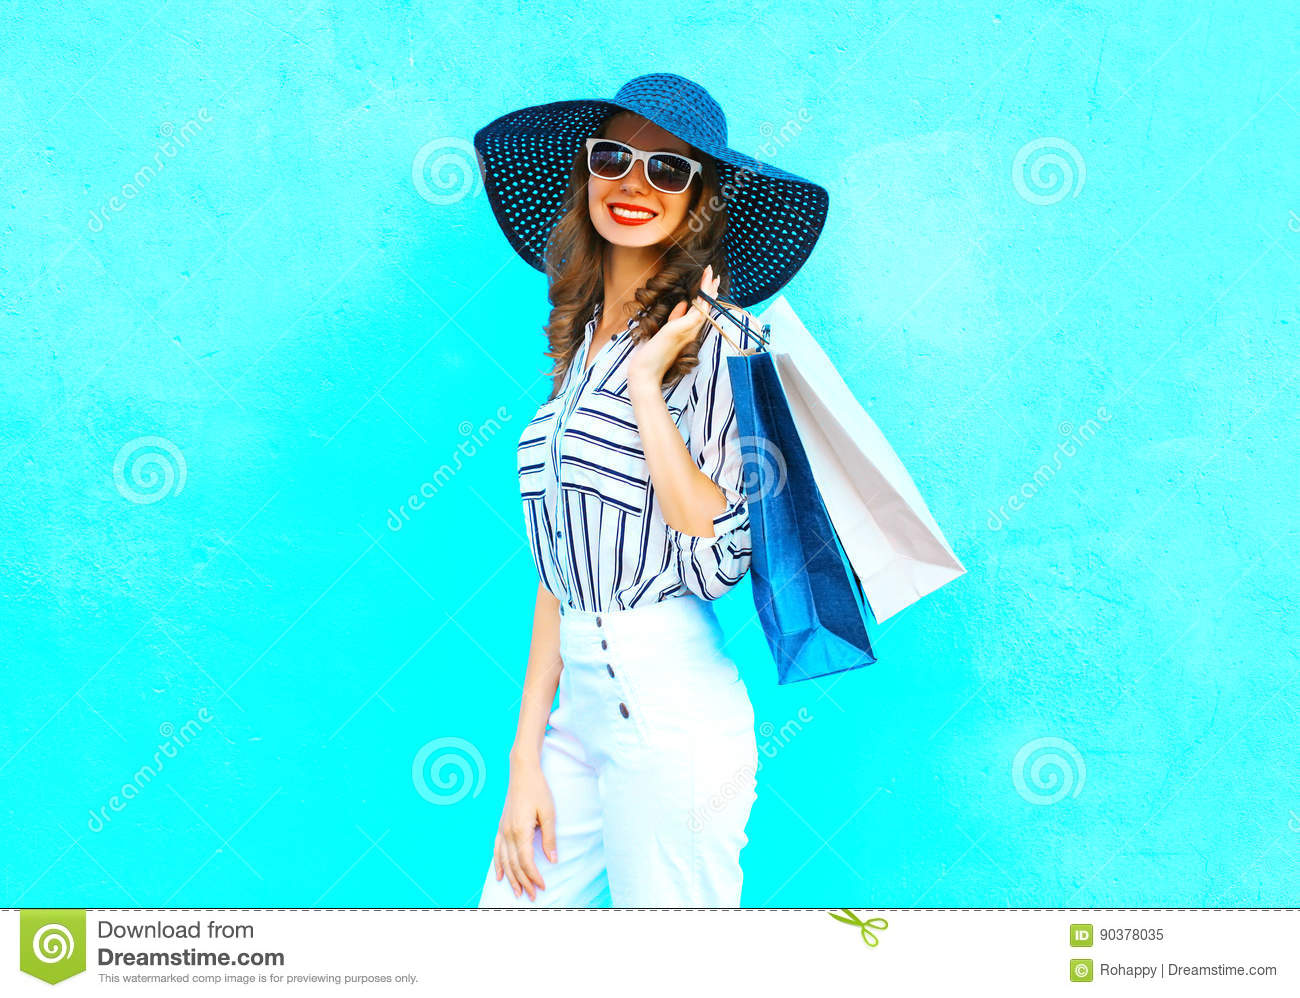 Fashion portrait young smiling woman wearing a shopping bags, straw hat, white pants over colorful blue background posing in city